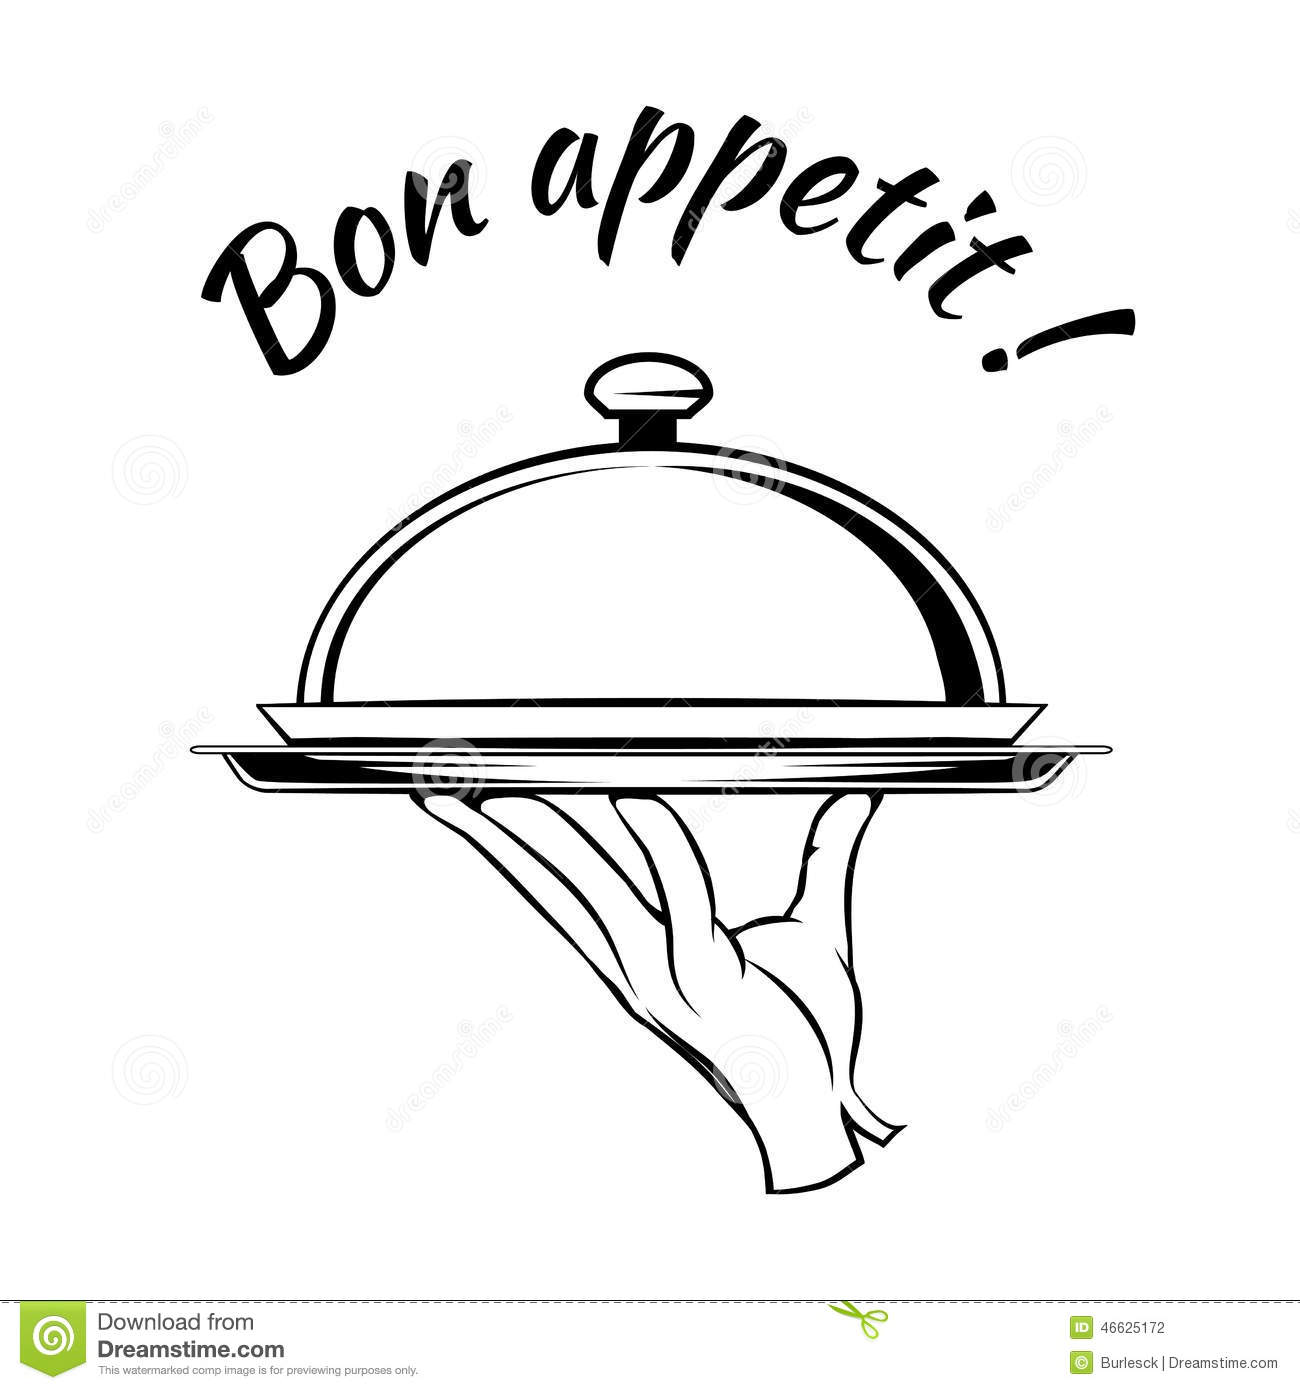 Trolls Coloring Pages 2 additionally Quizz 129518 together with Stock Images Cartoon Chefs Hat Holding Sign Illustration Image32257954 besides Dessin Tatouage Tete De Mort 1463961928202 as well Restaurant Logo Fork. on old chef